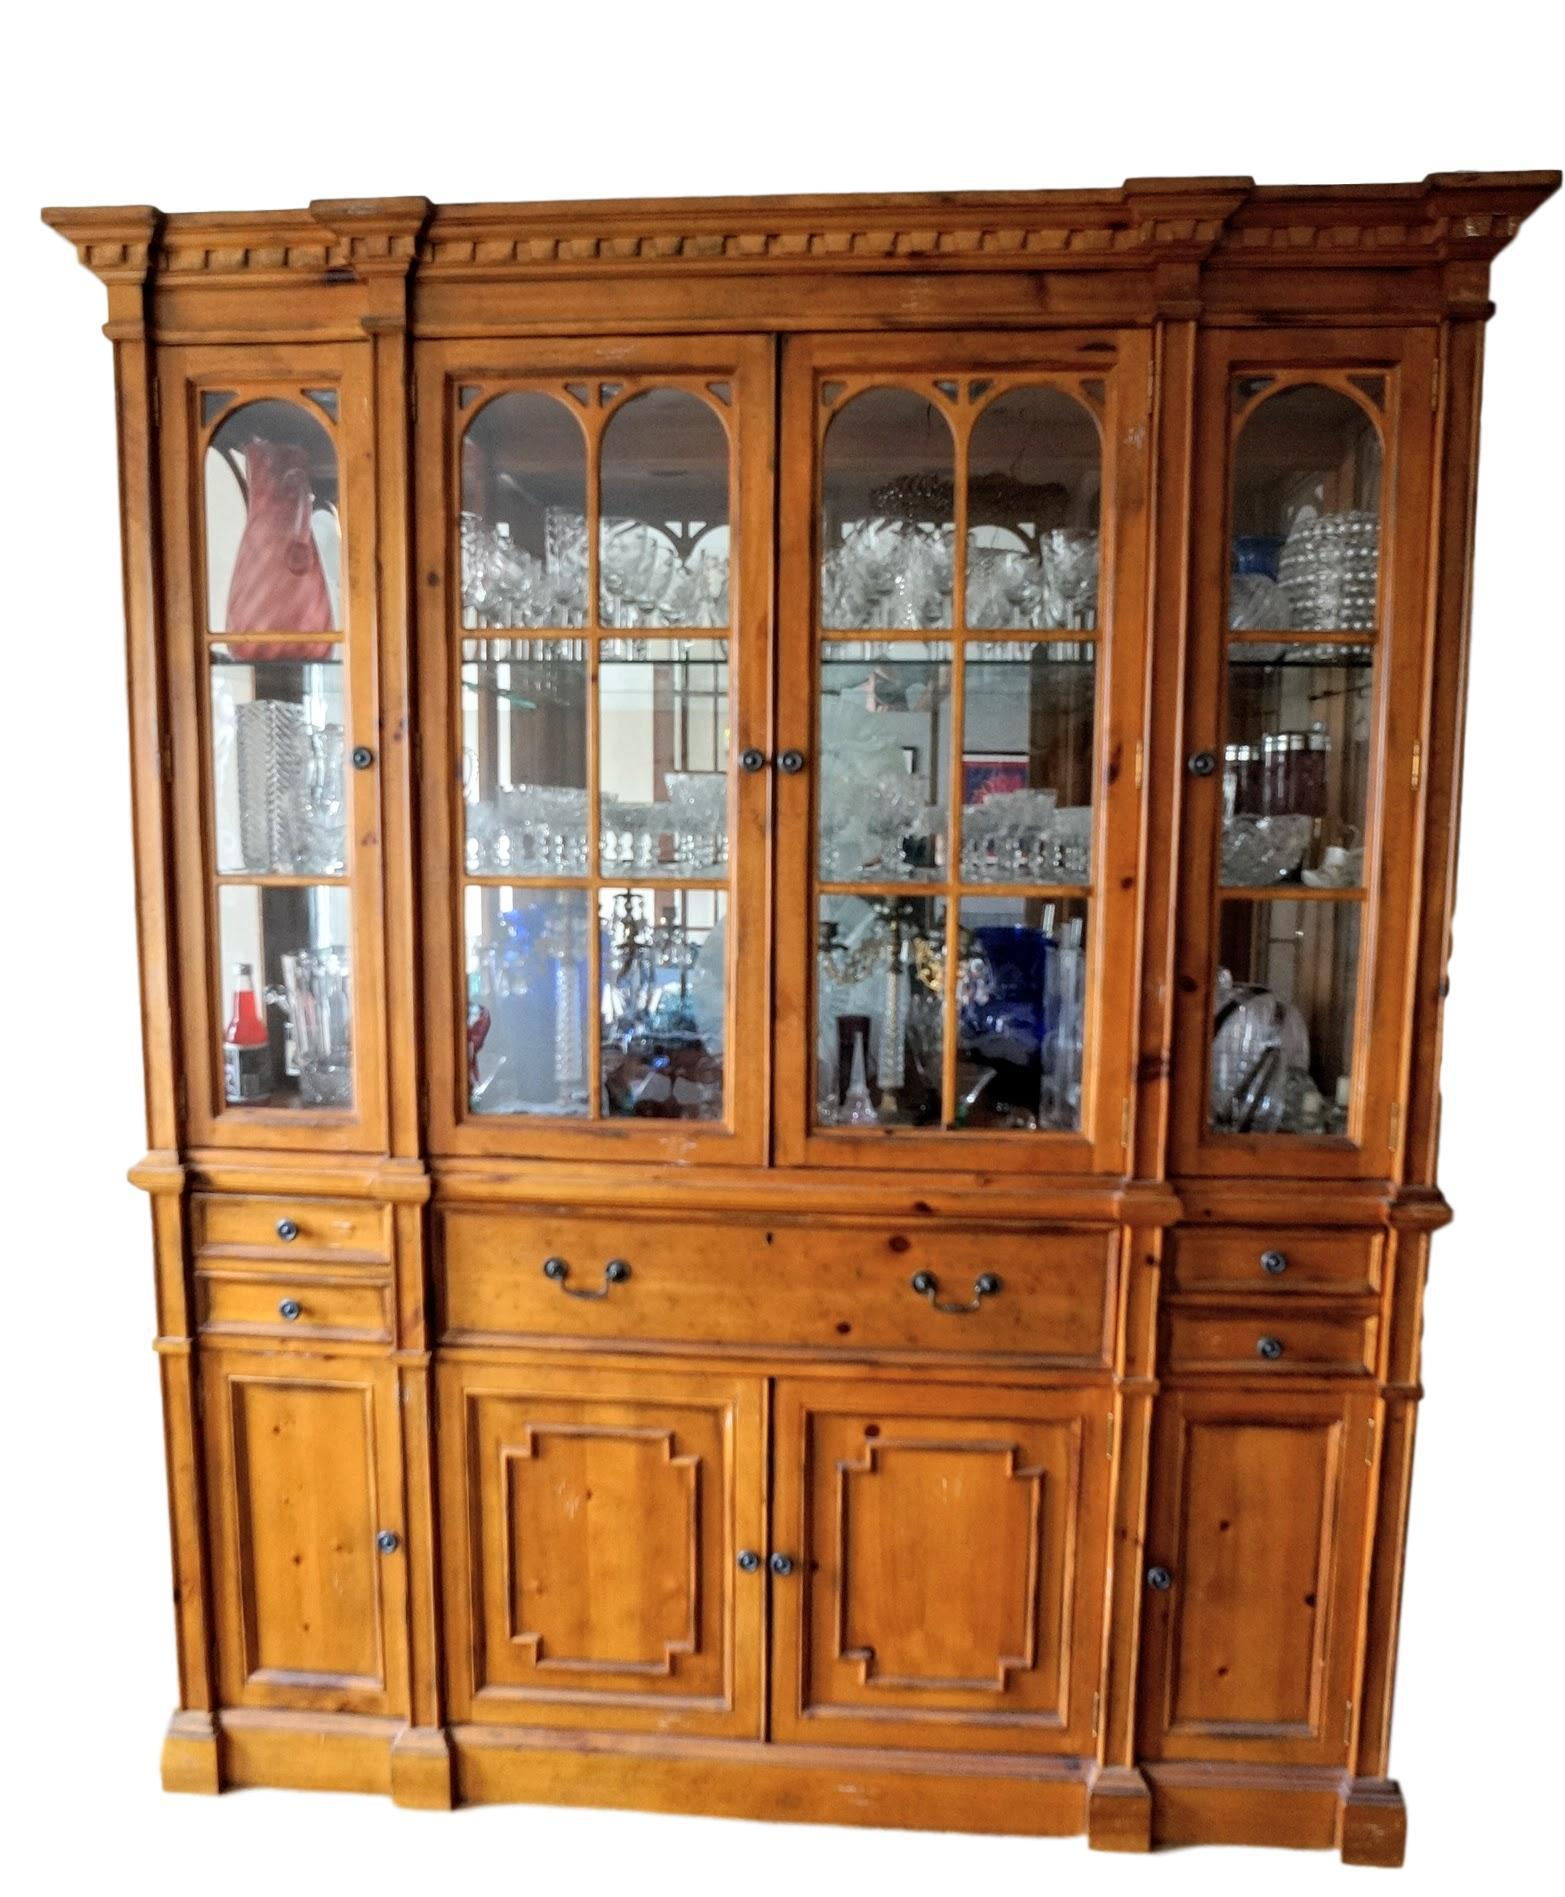 Drexel Heritage Drexel Heritage Pinehurst Collection China Cabinet For Sale    Image 4 Of 4